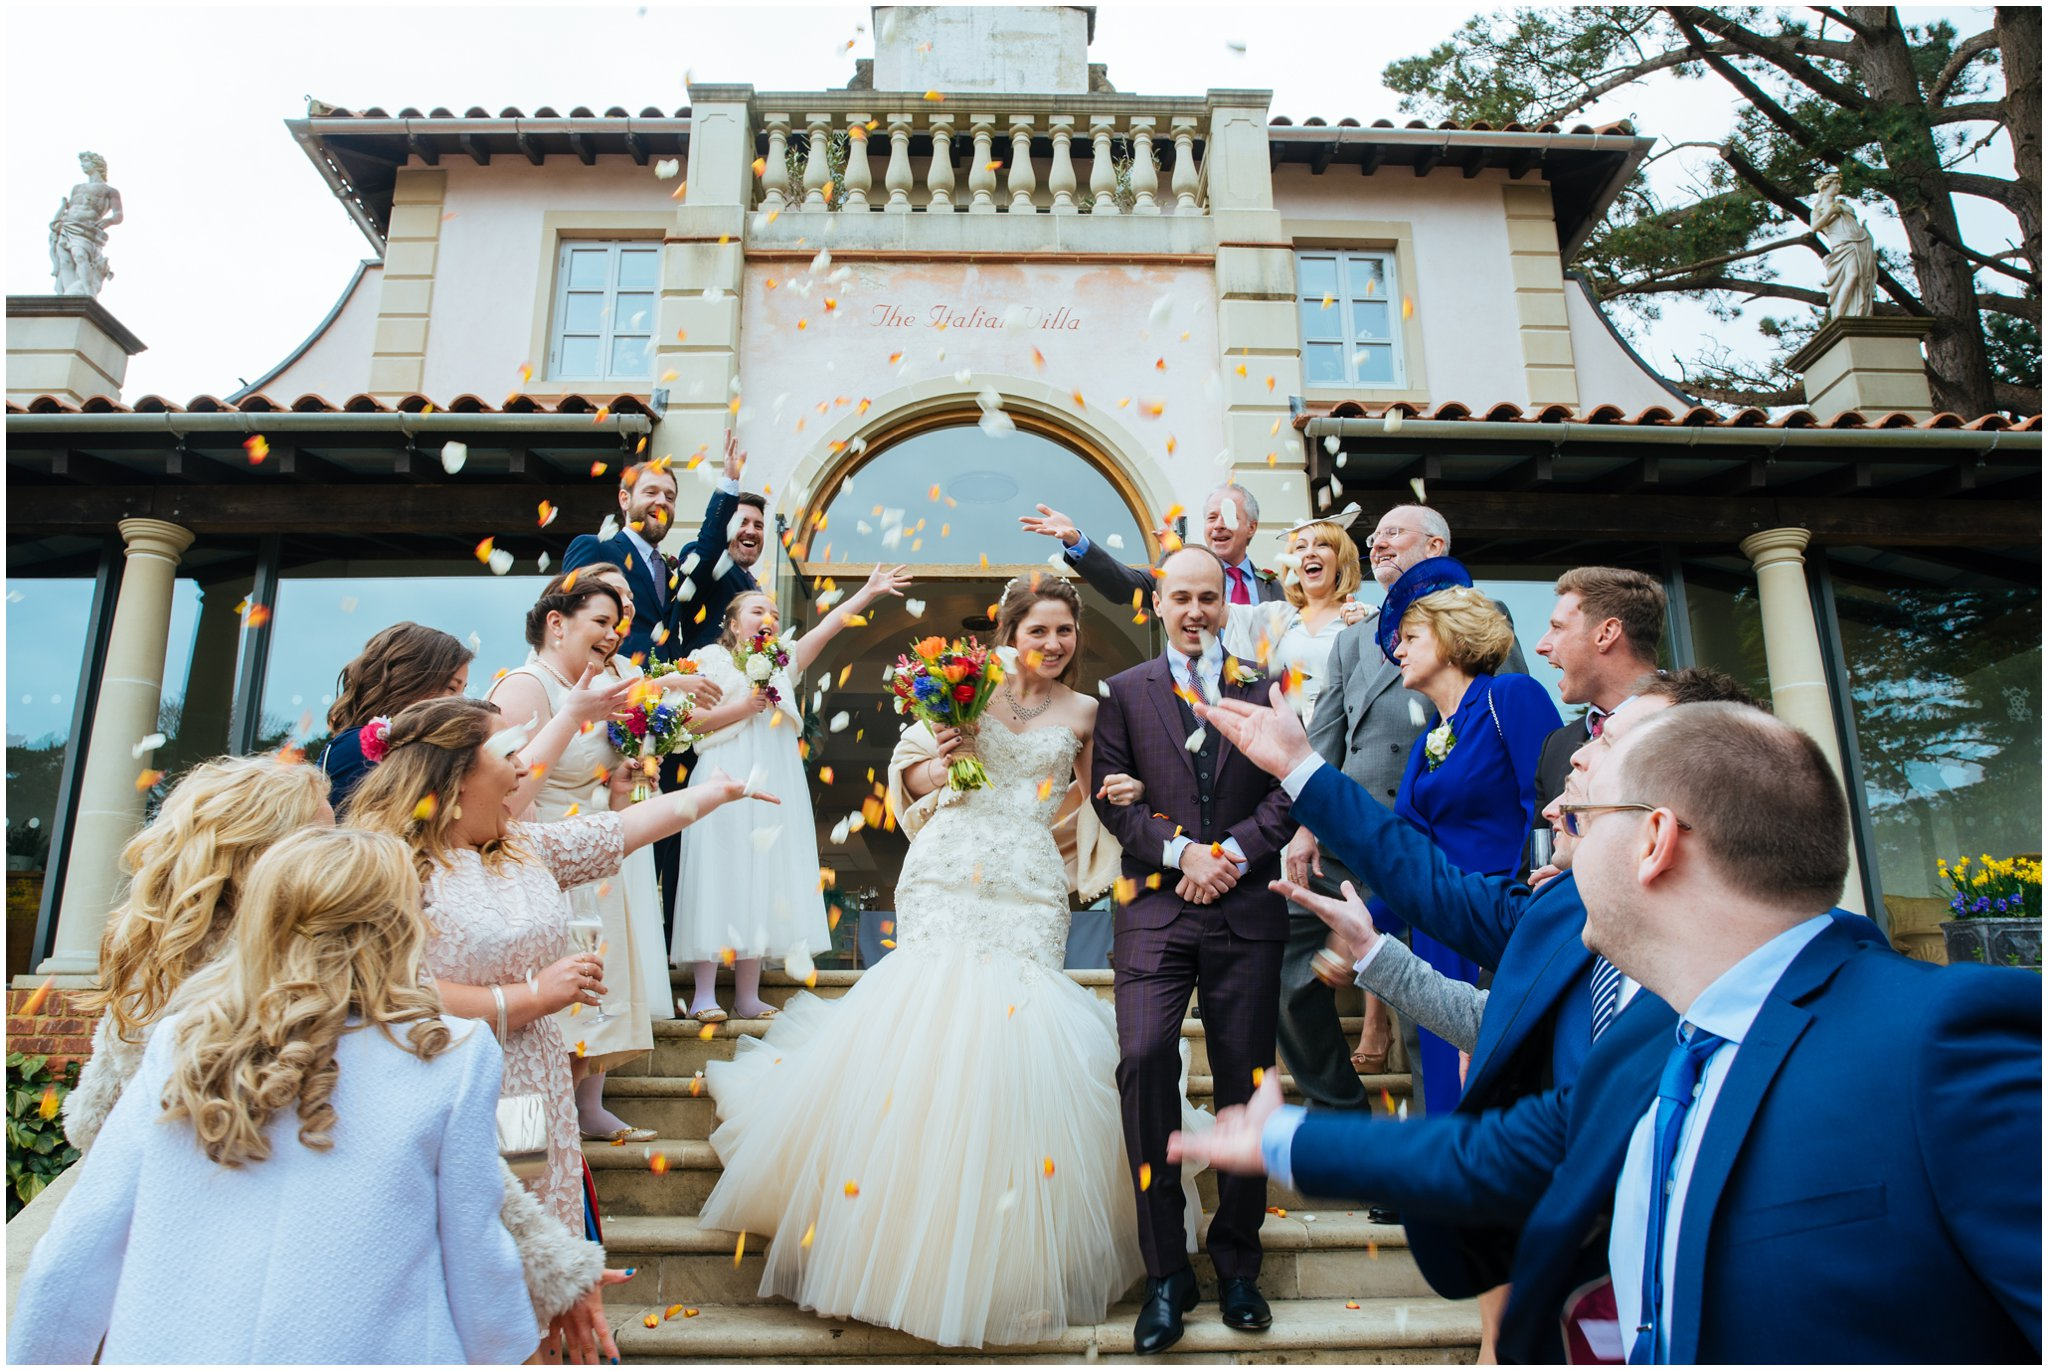 Italian Villa Poole wedding